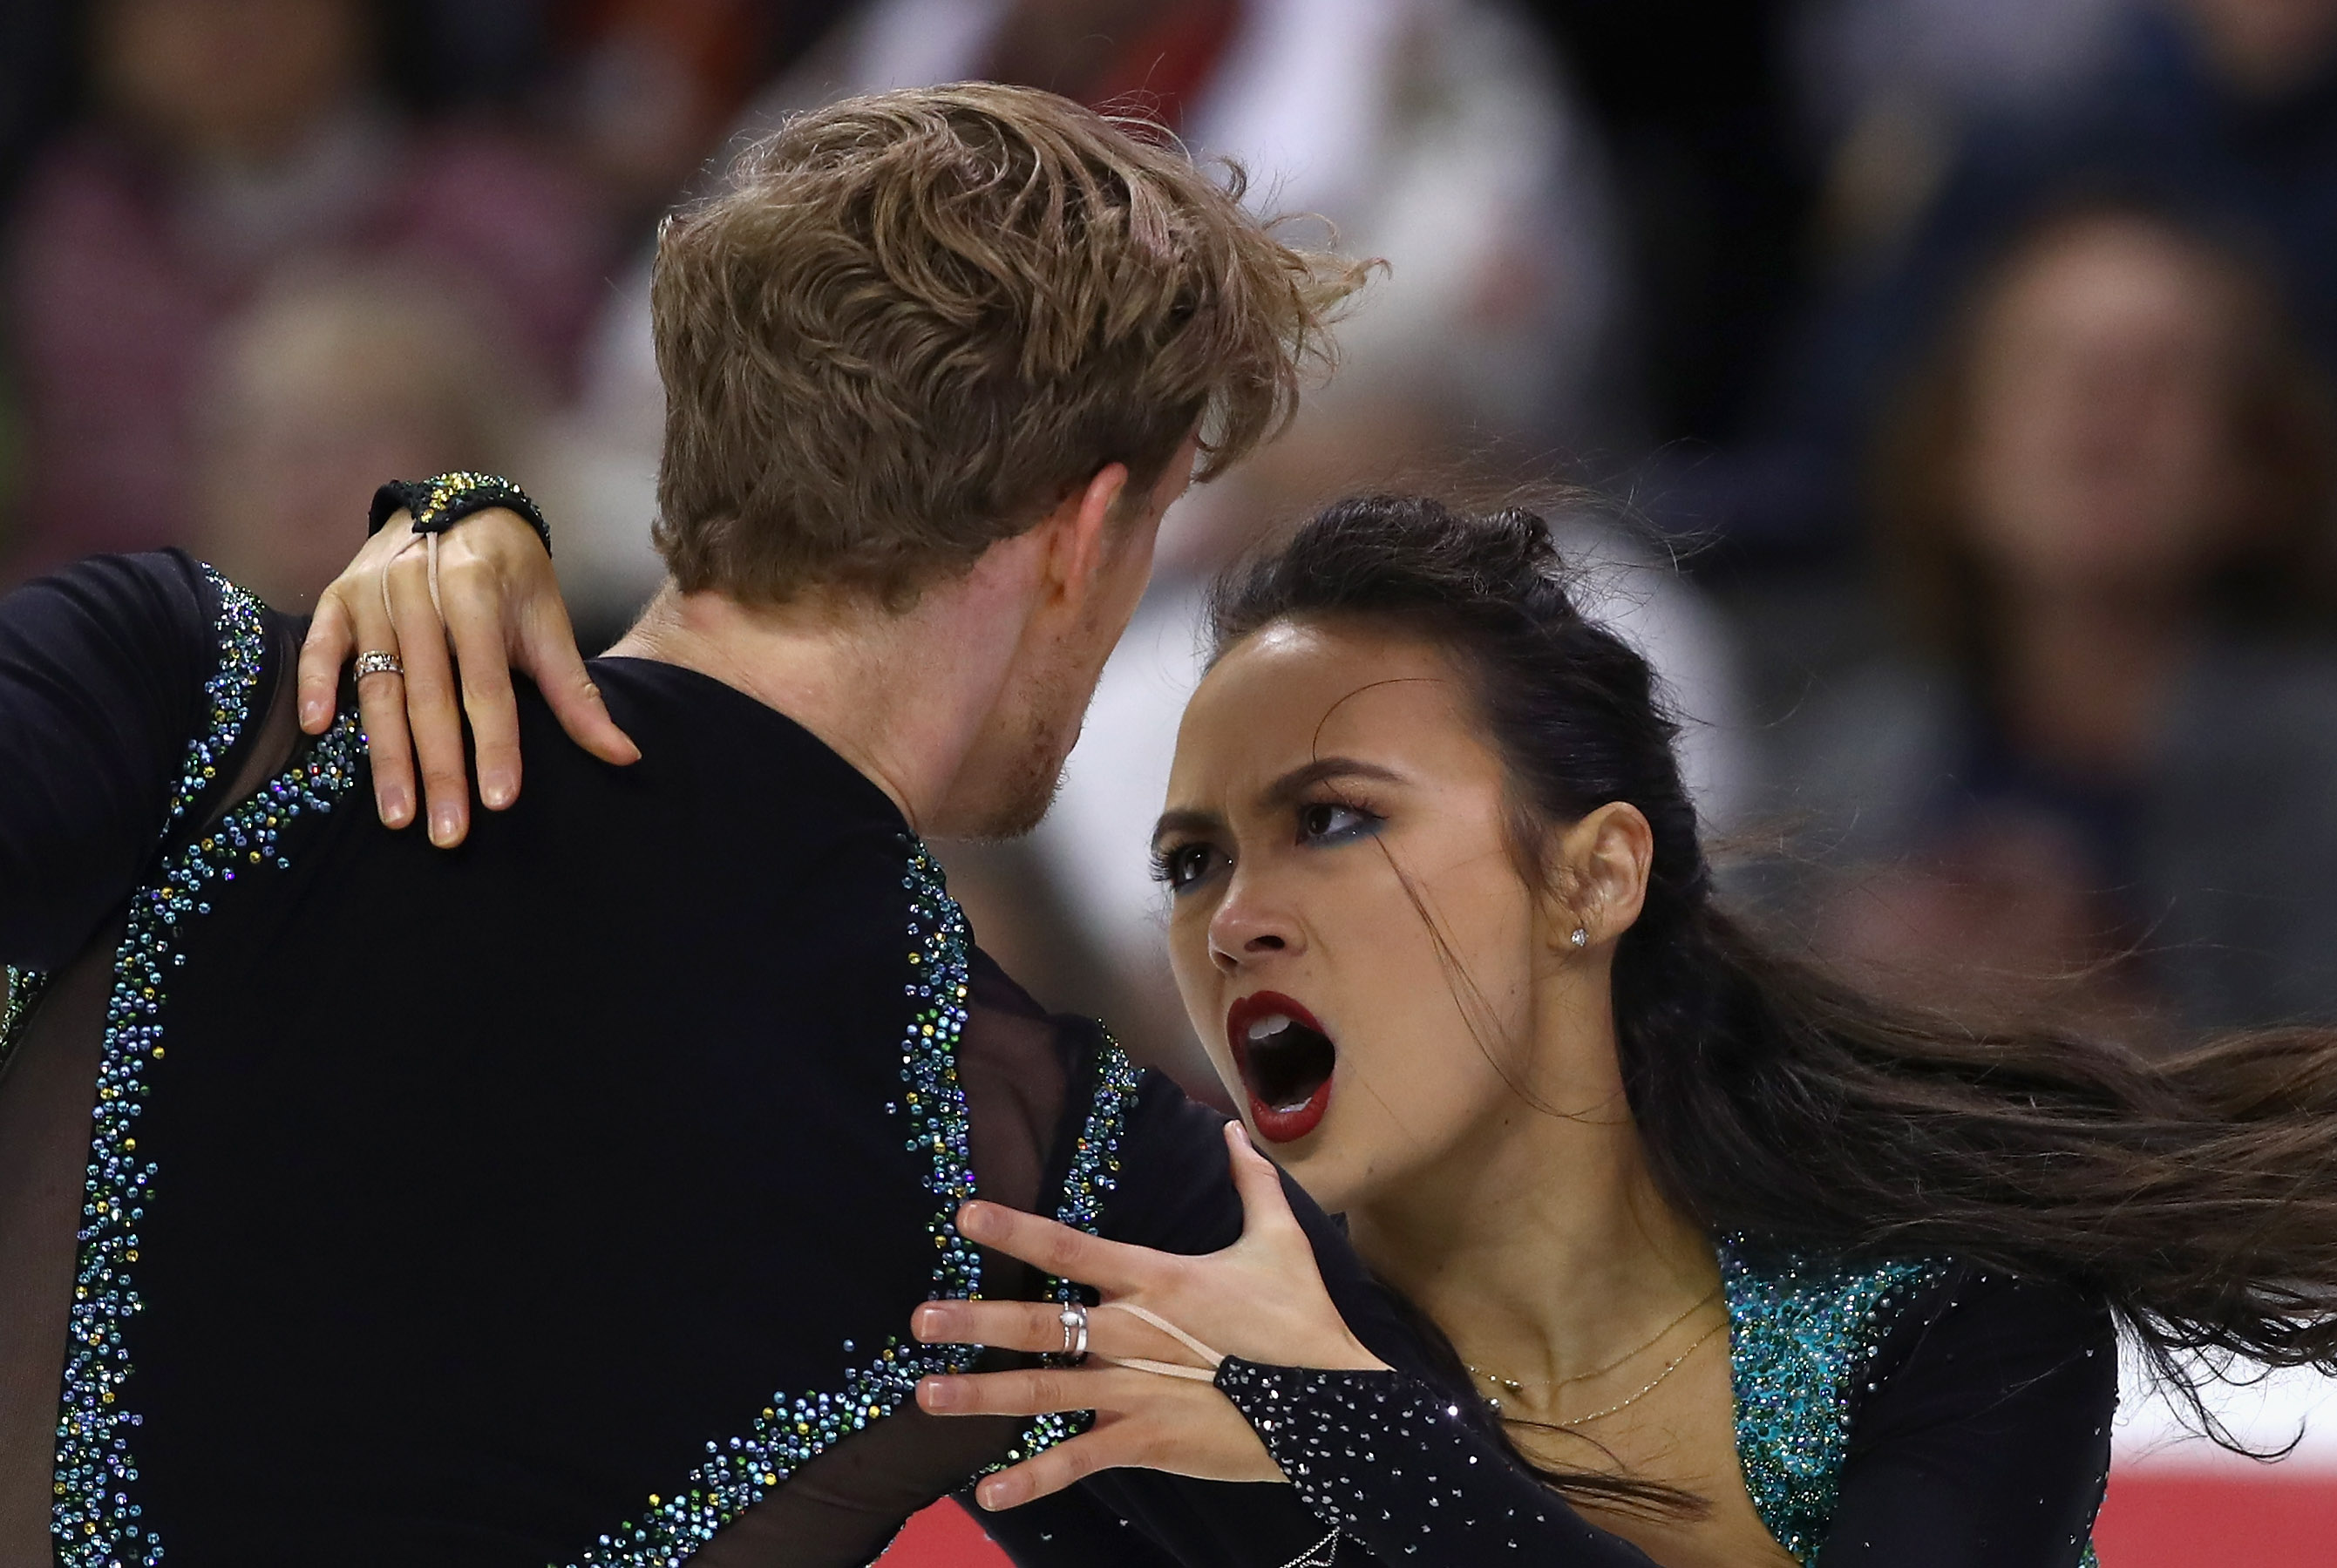 Madison Chock and Evan Bates compete in the Championship Dance Short Program during Day 3 of the 2018 Prudential U.S. Figure Skating Championships at SAP Center at SAP Center at SAP Center on January 5, 2018 in San Jose, California. (Photo by Ezra Shaw/Getty Images)